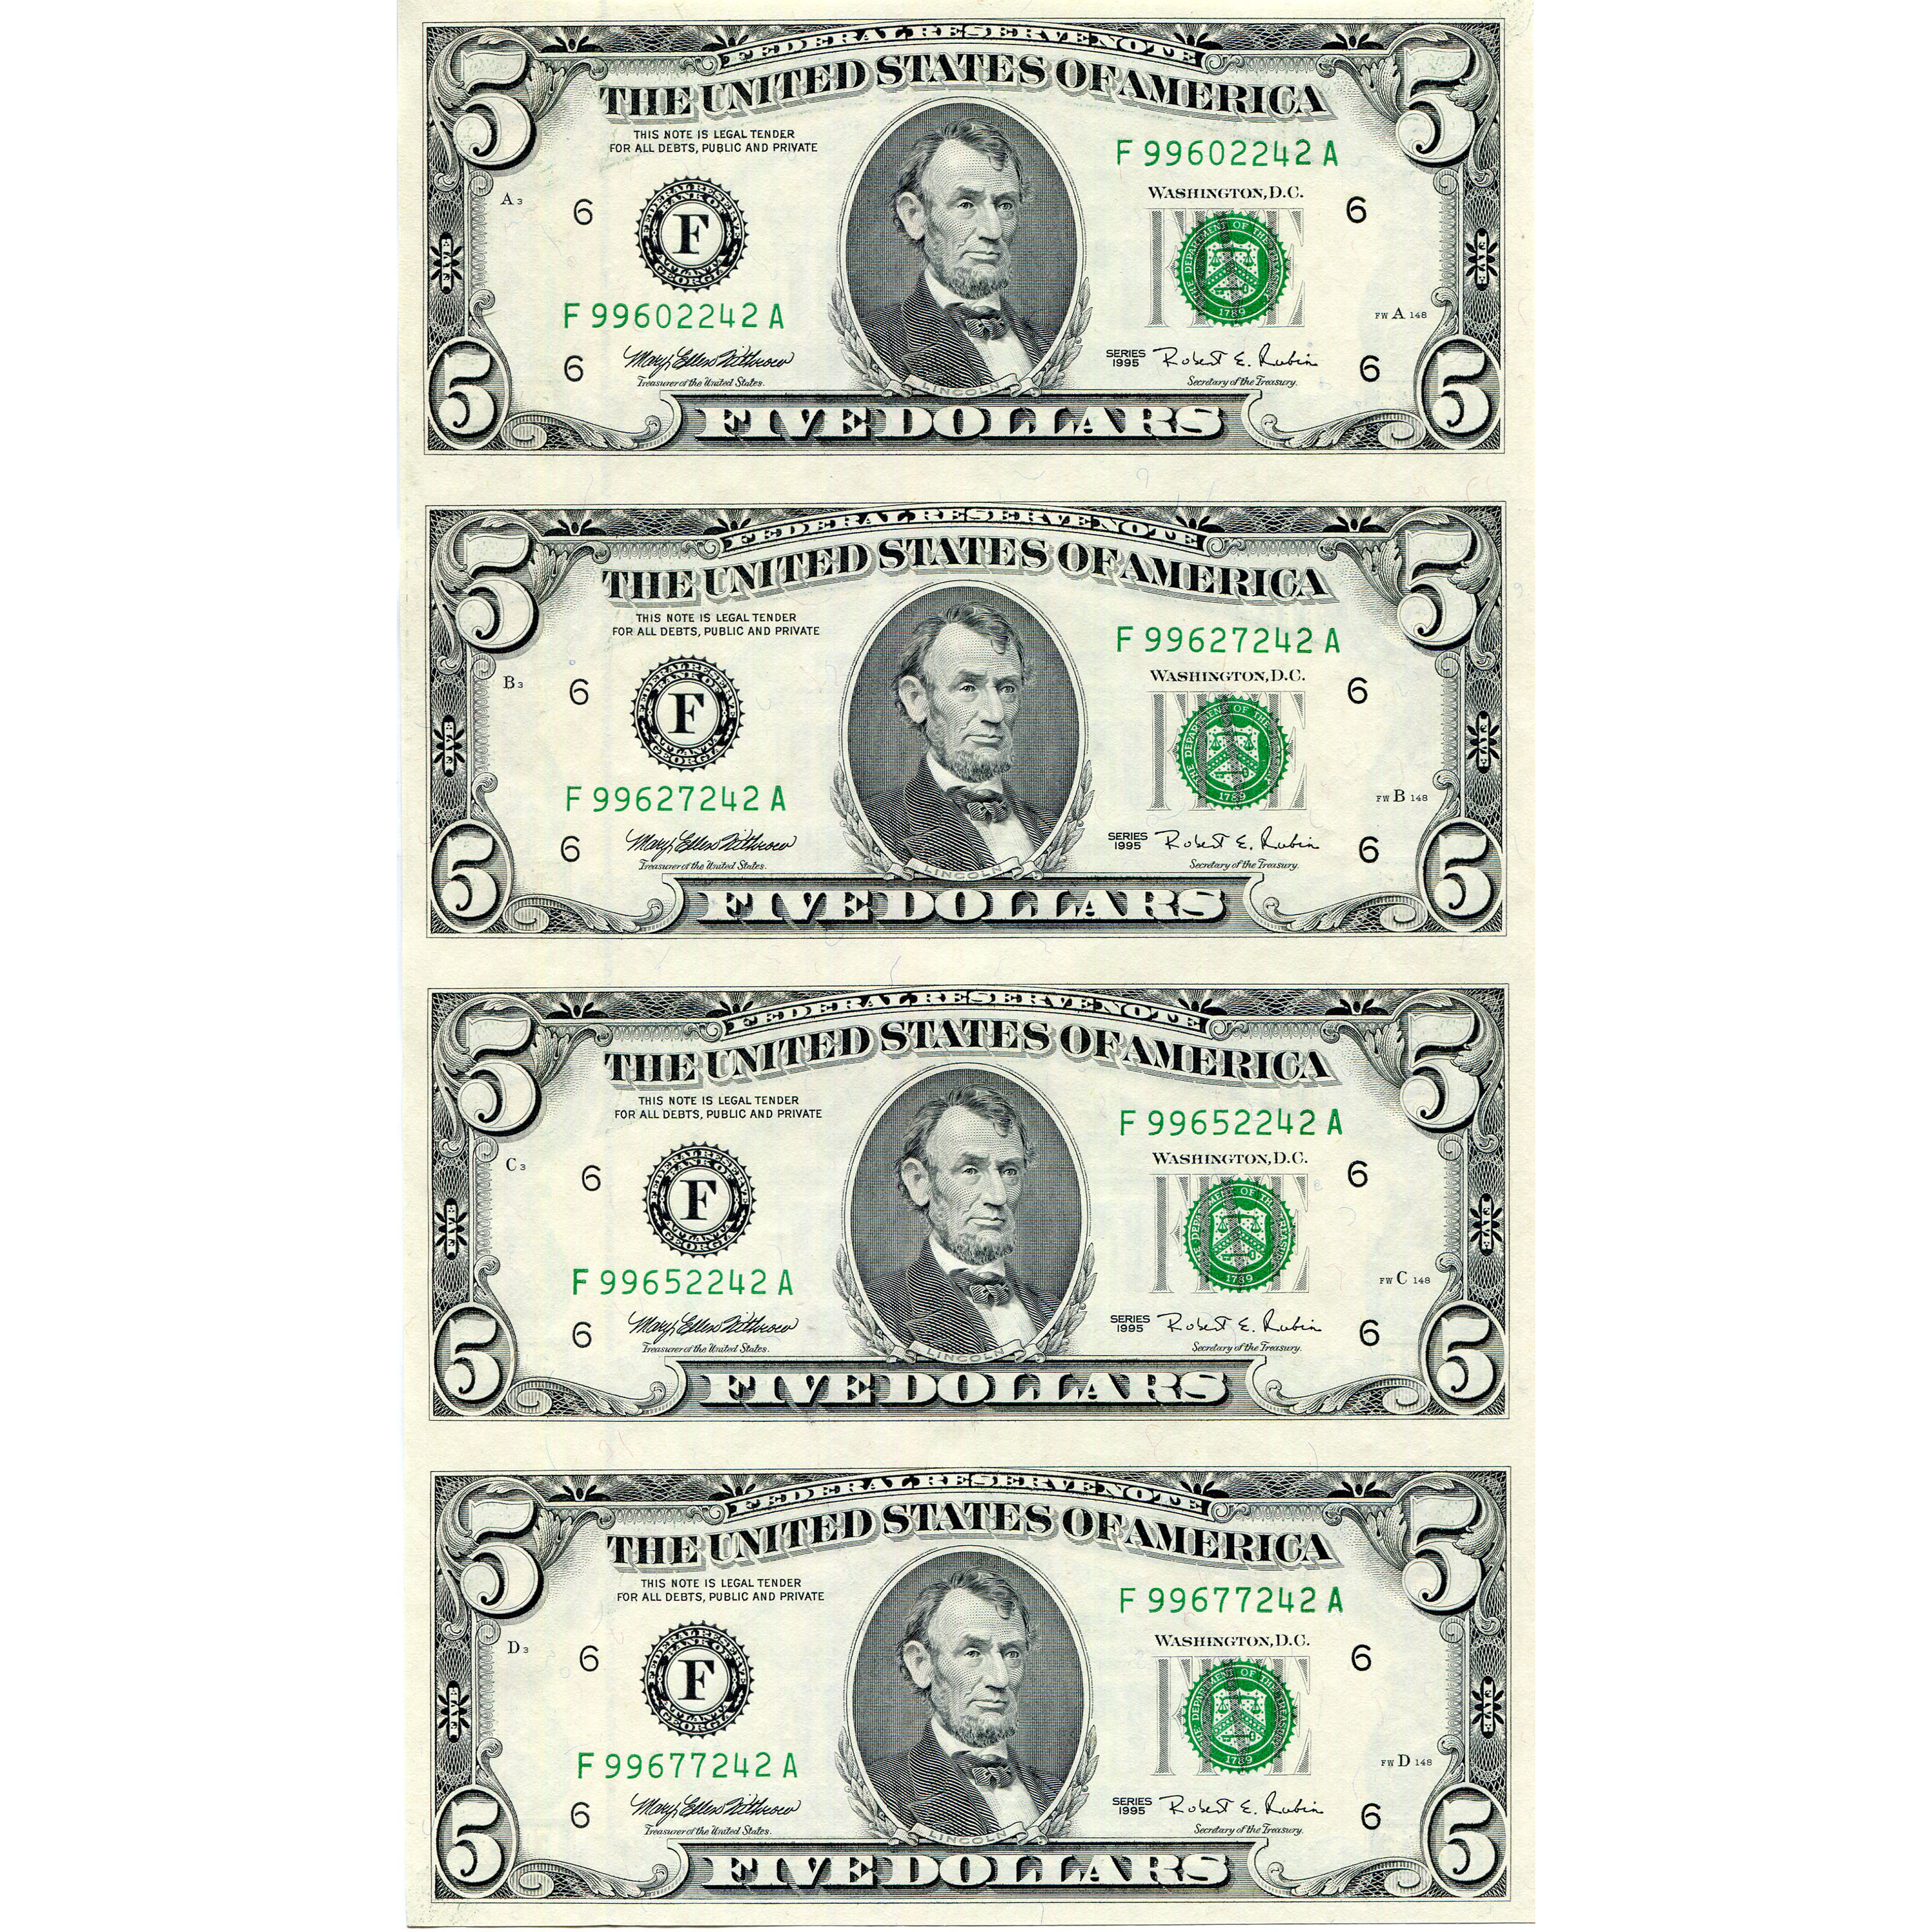 $5 Uncut Currency Sheets